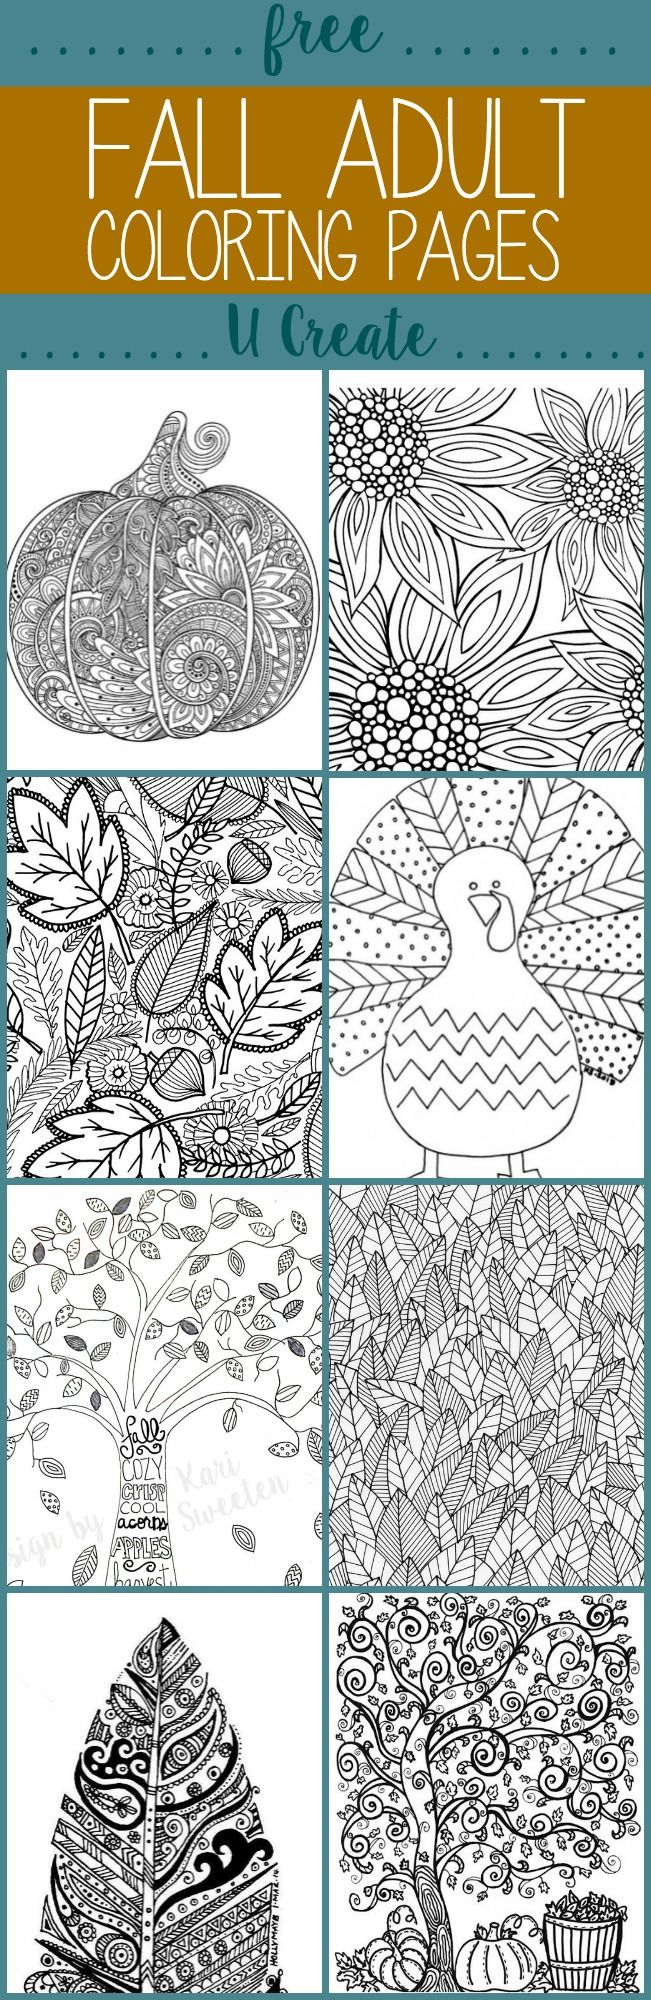 How to say colouring book in japanese - Free Fall Adult Coloring Pages